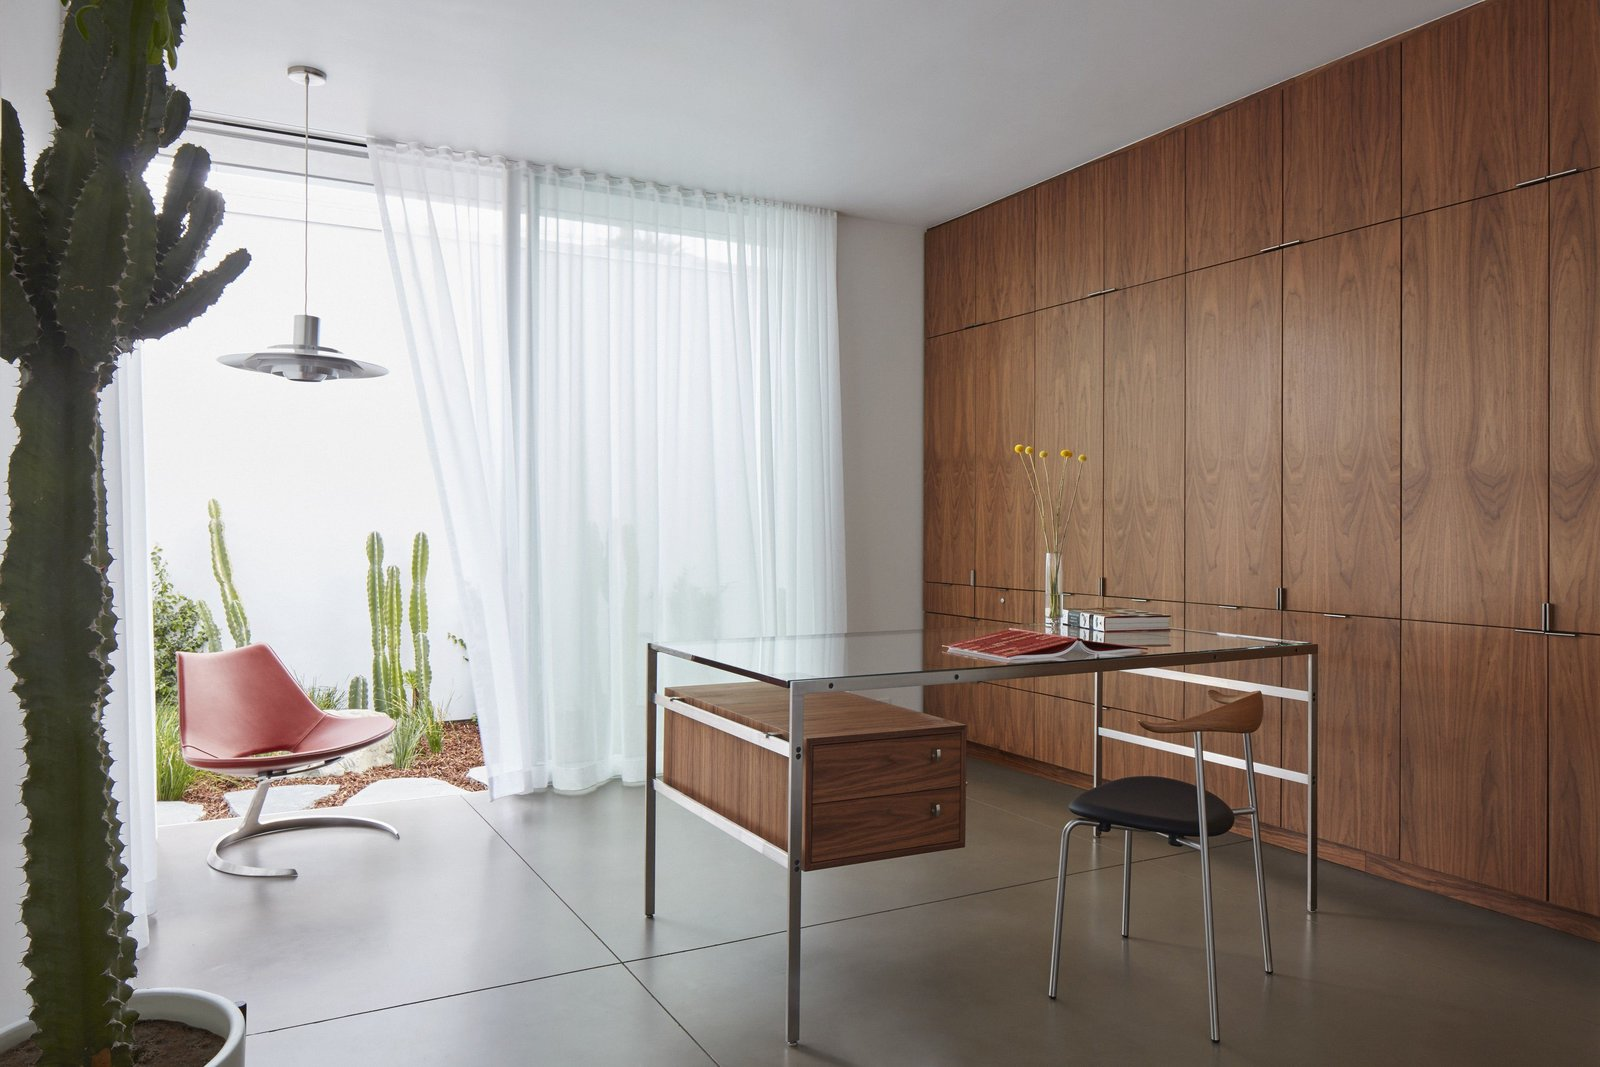 In 2015 the Fabricius & Kastholm desk bo-555 was manufactured for the Santa Monica Residence. Before that, it hadn't been manufactured for more than two decades. Tagged: Office, Study, Chair, Desk, Concrete, Lamps, and Storage.  Best Office Concrete Desk Photos from Santa Monica Residence